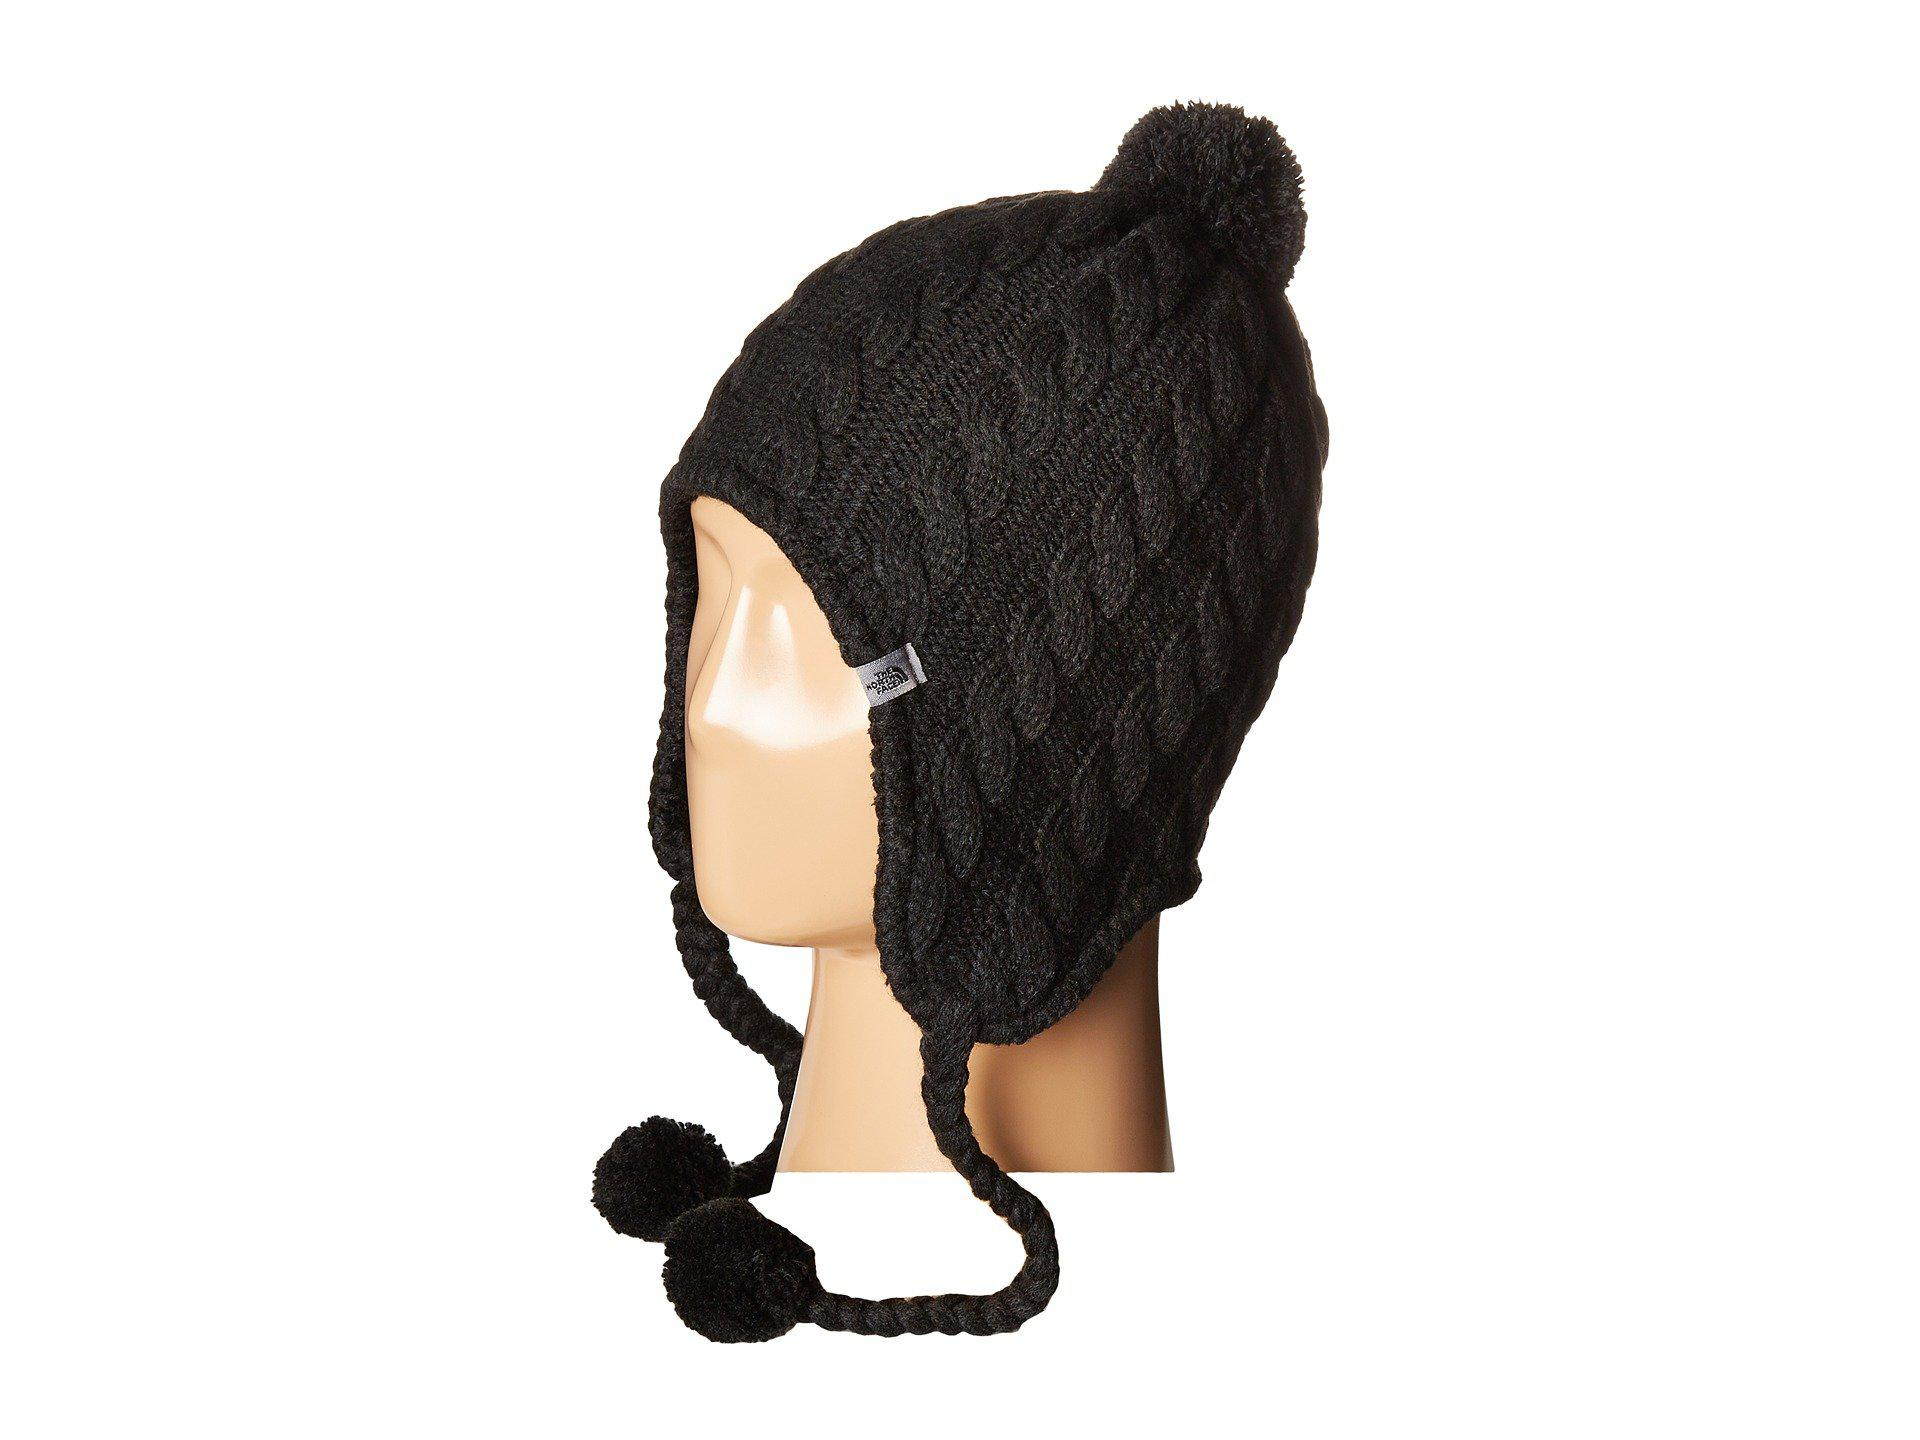 Lyst - The North Face Fuzzy Earflap Beanie in Black for Men b9c2ae47c1cc